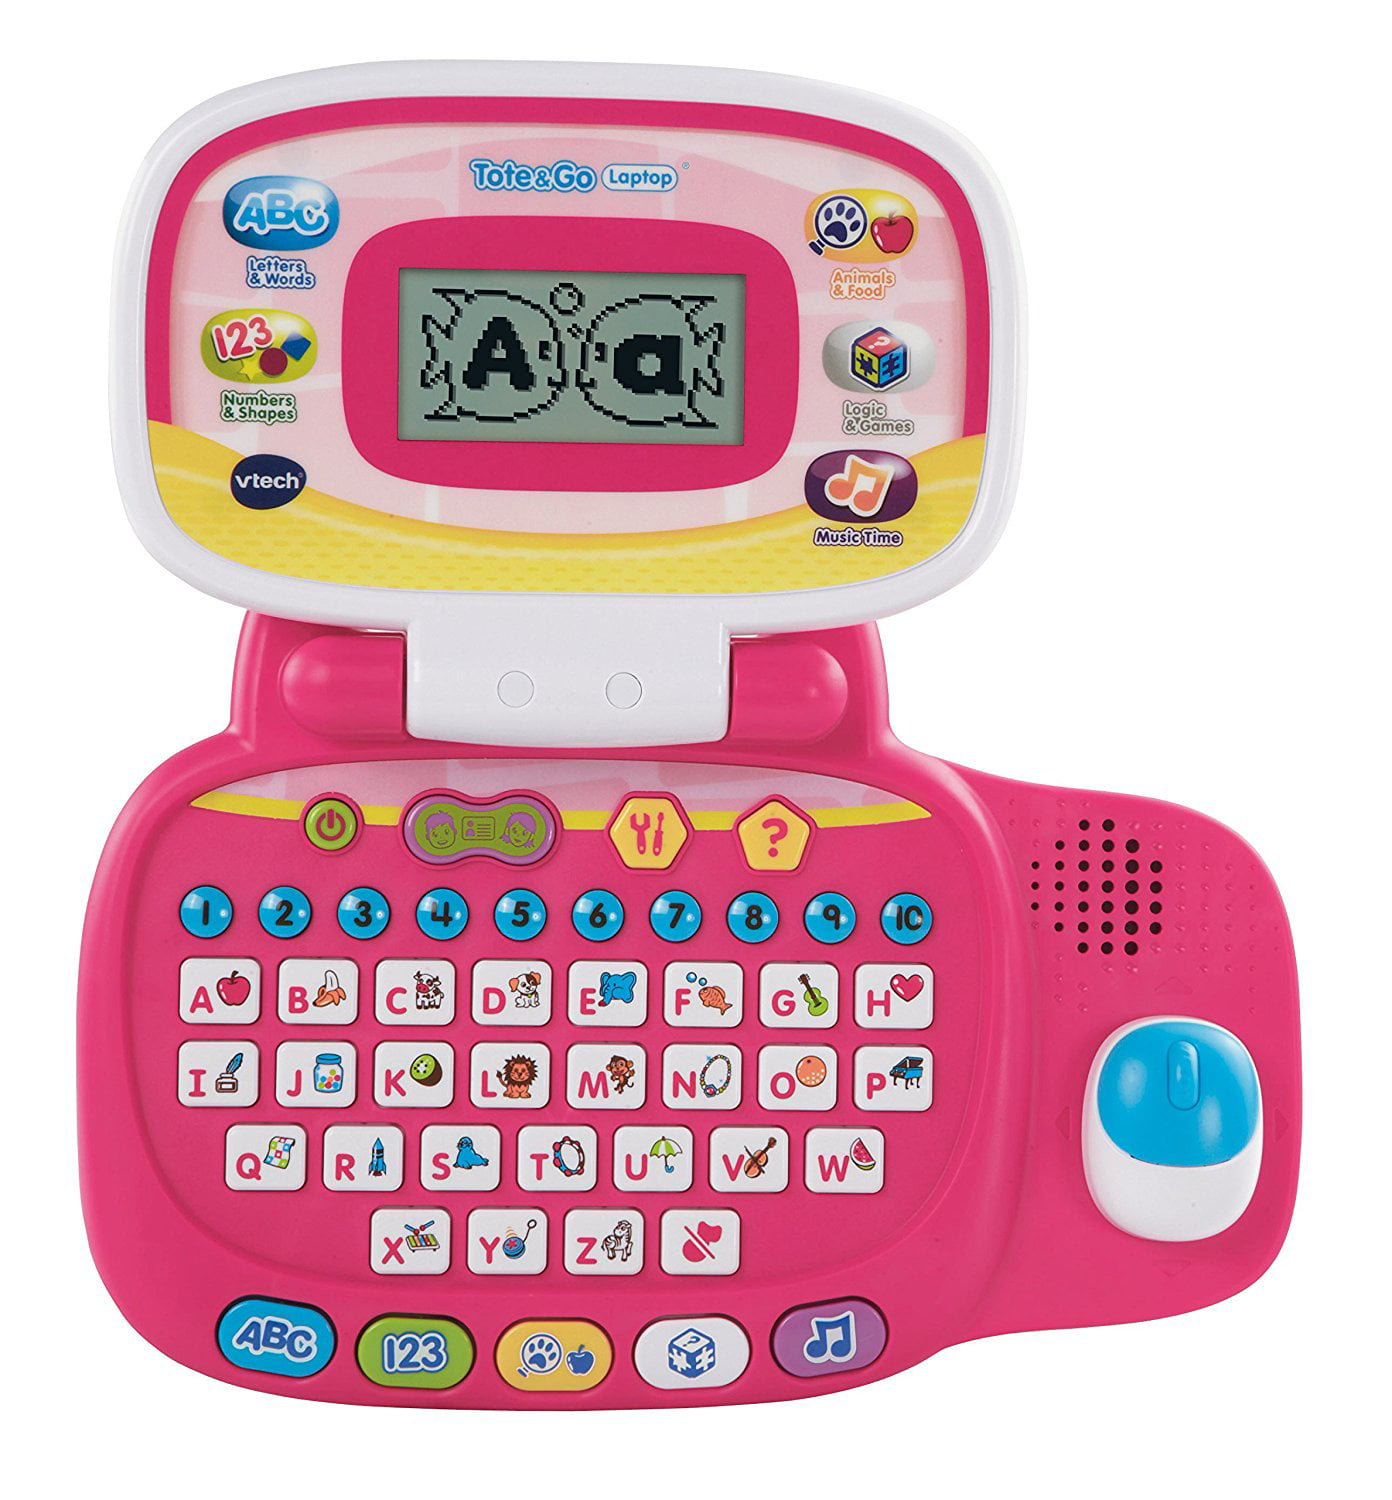 Tote and Go Laptop, Pink, Kids laptop offers 20 learning activities that teach 60+ words,... by